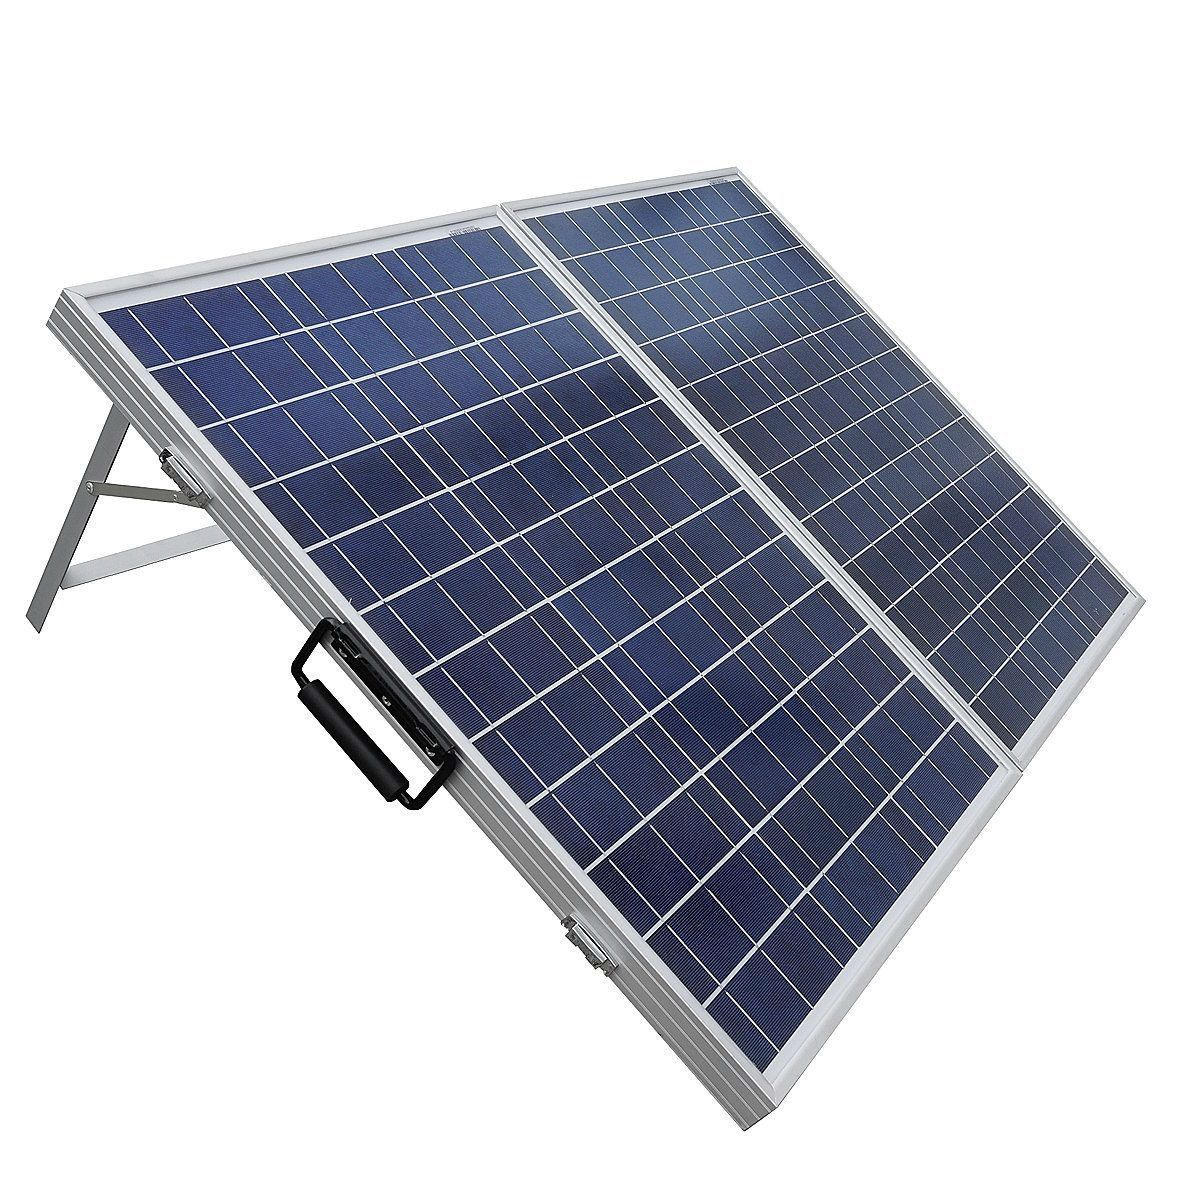 100 Watt Portable Folding Solar Panel 12v Battery Charger With Charge Controller Best Solar Panels Solar Panels Solar Panels For Home